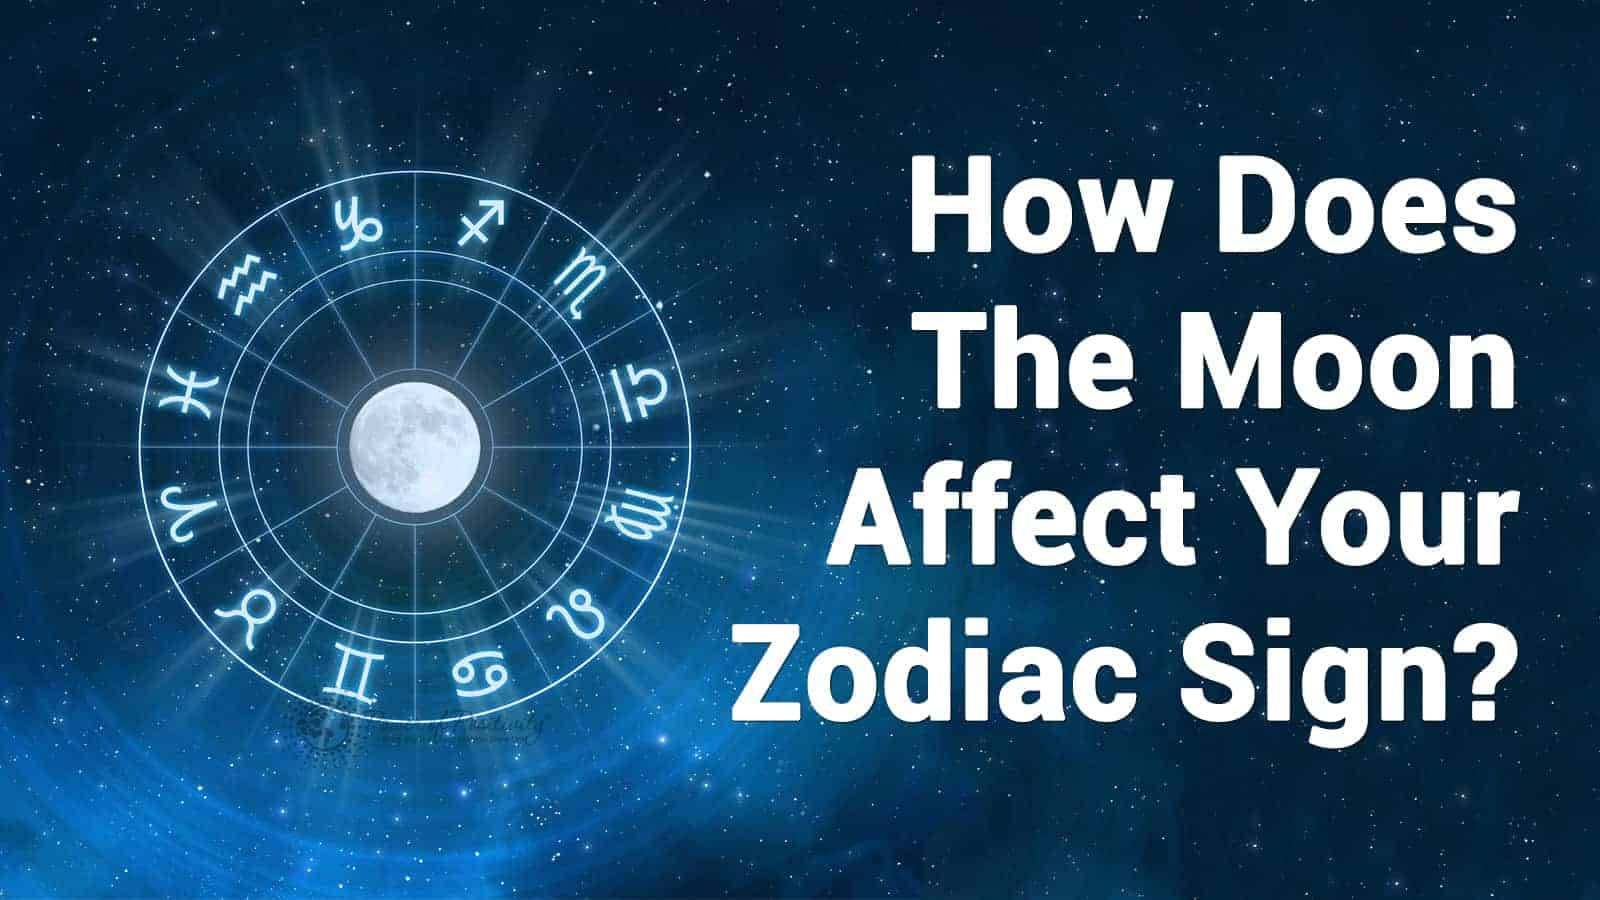 9306b5a40 How Does The Moon Affect Your Zodiac Sign? moon zodiac